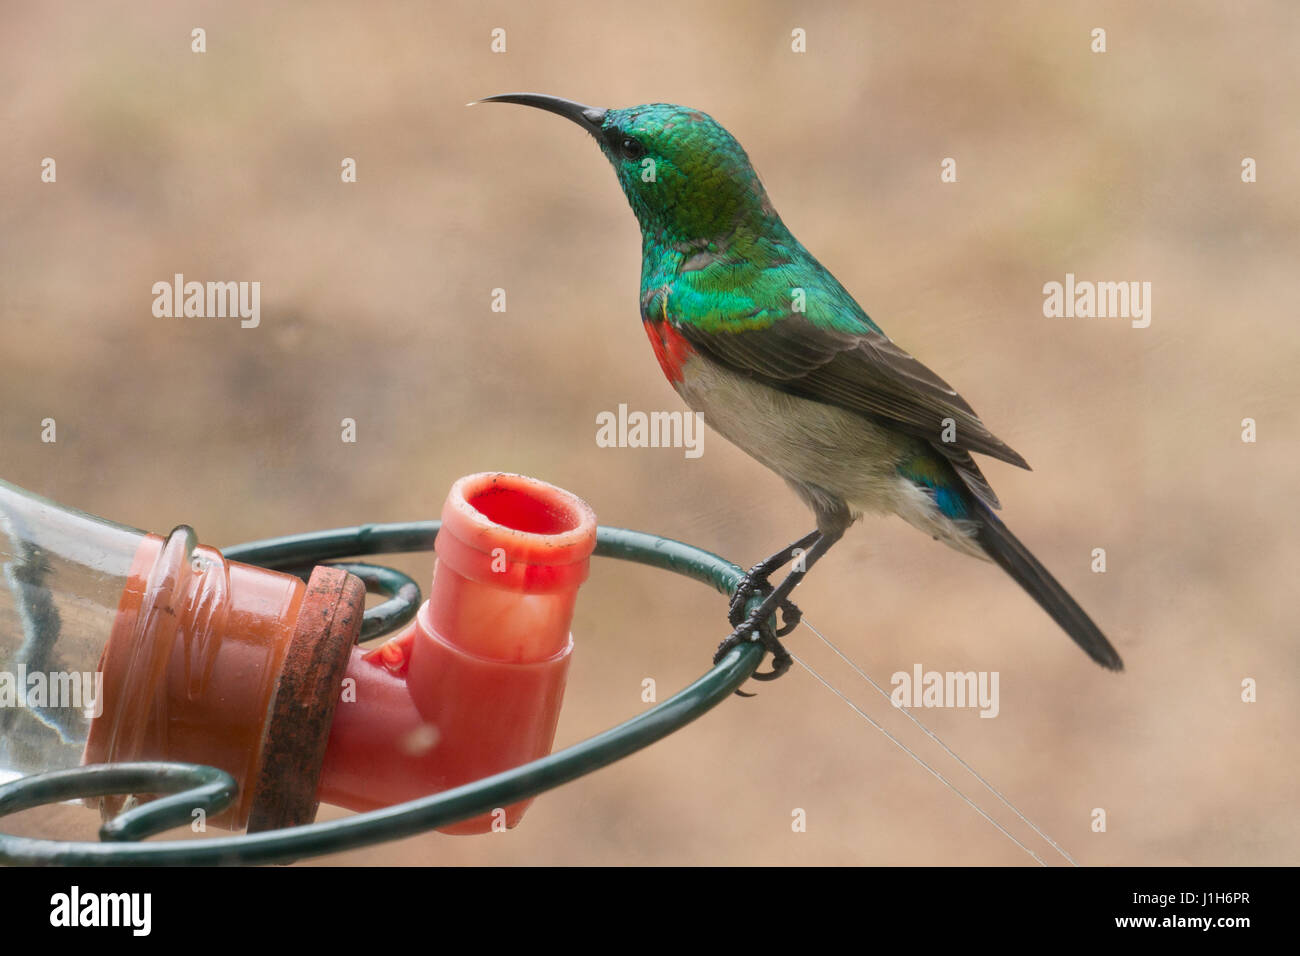 lesser double collared sunbird on sugar feeder , South Africa - Stock Image